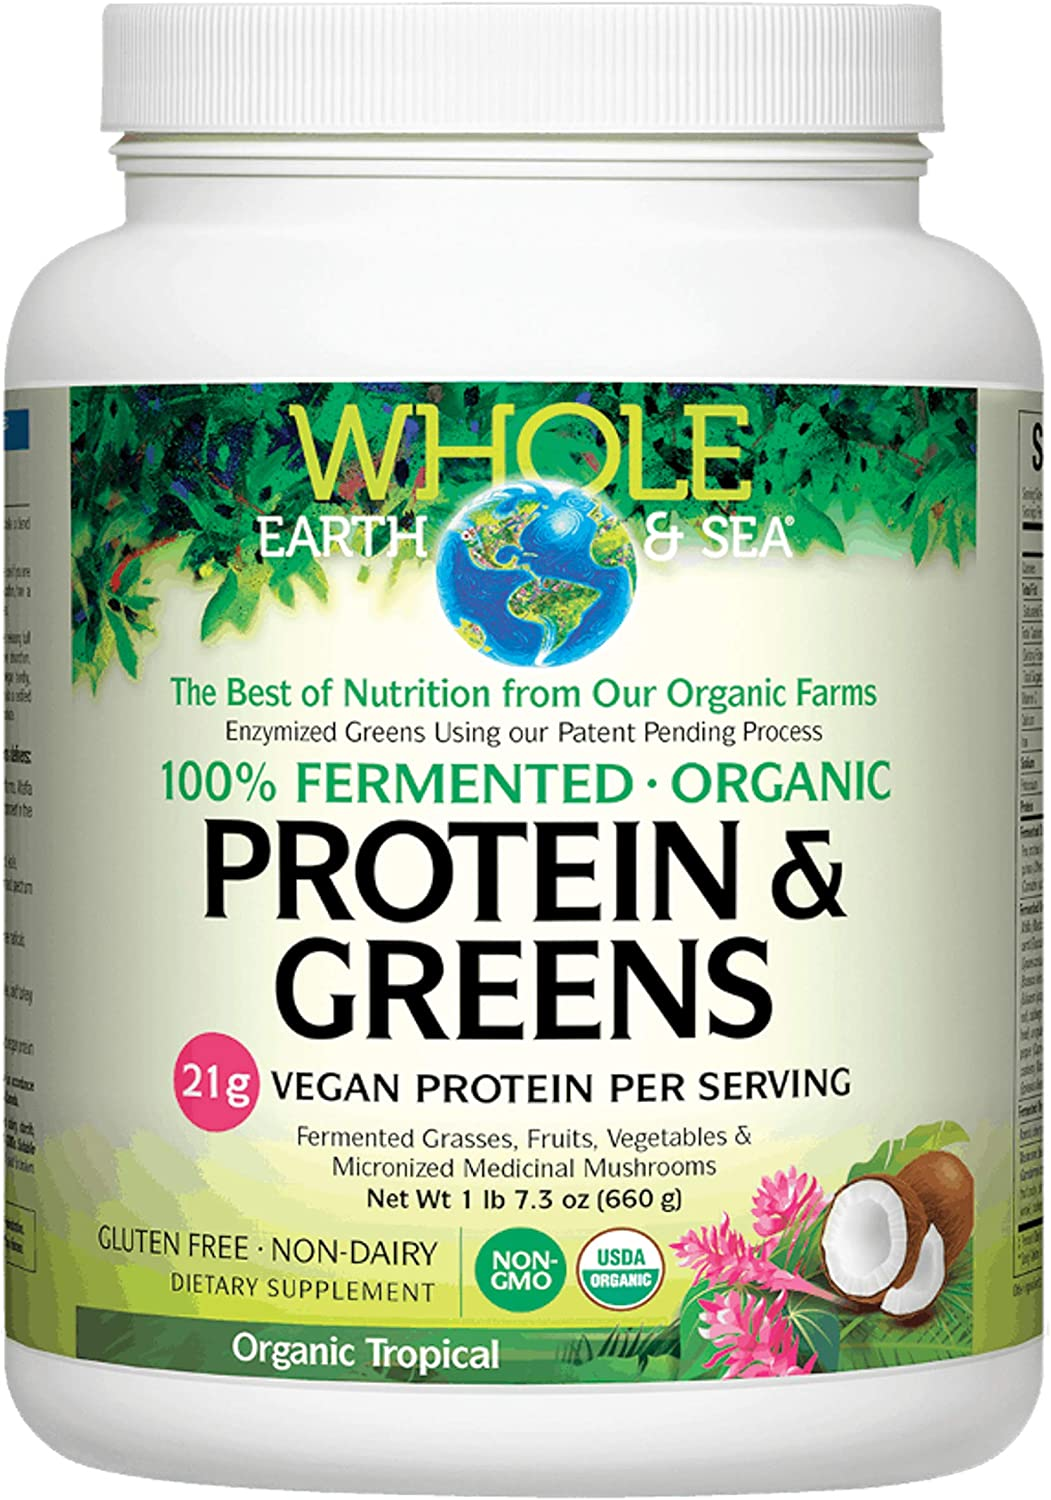 Whole Earth & Sea from Natural Factors, Organic Fermented Protein & Greens, Whole Food Supplement, Vegan, Non-Dairy, Tropical, 1 lb 7.3 oz (20 Servings)